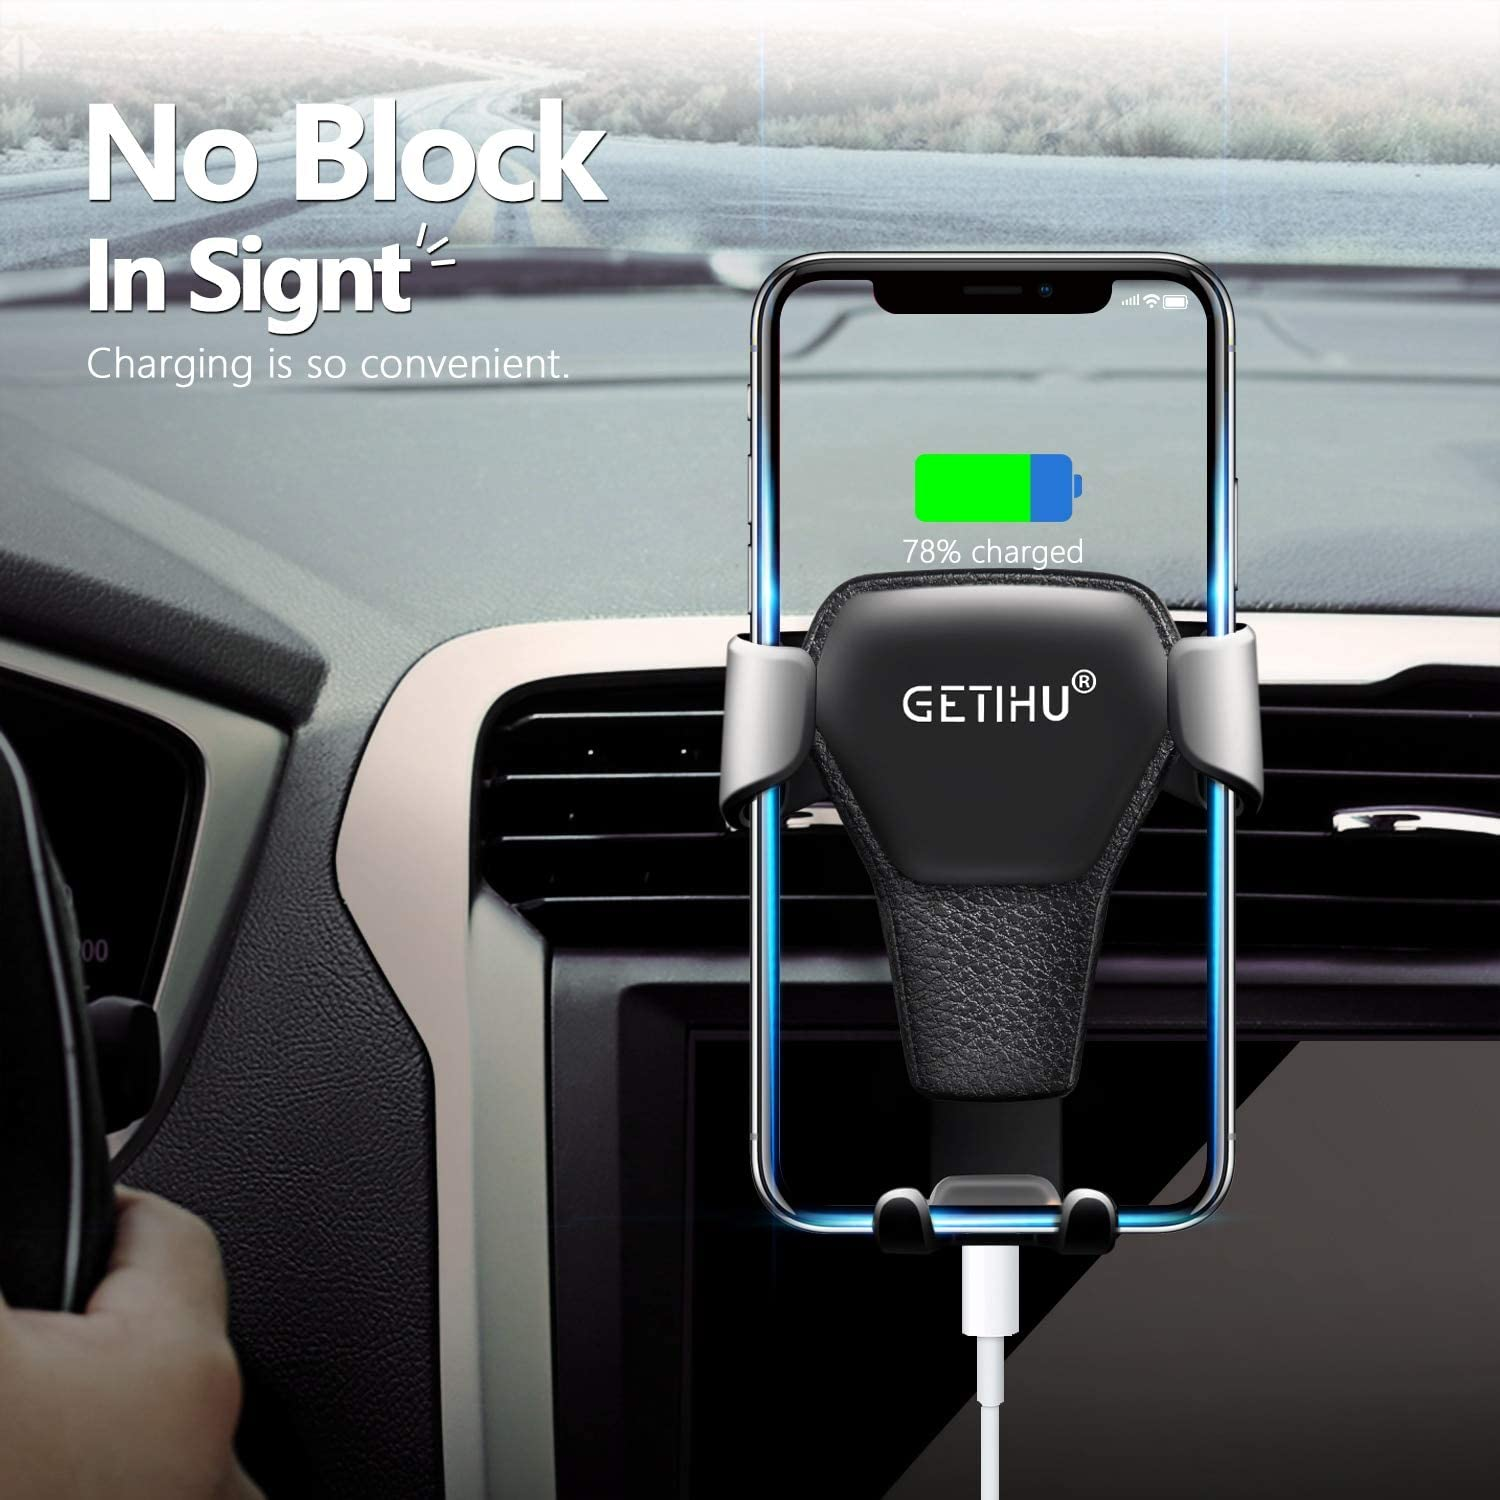 GETIHU Gravity Car Holder for Phone in Car Air Vent Clip Mount No Magnetic Mobile Phone Holder Cell Stand Support for All Phone